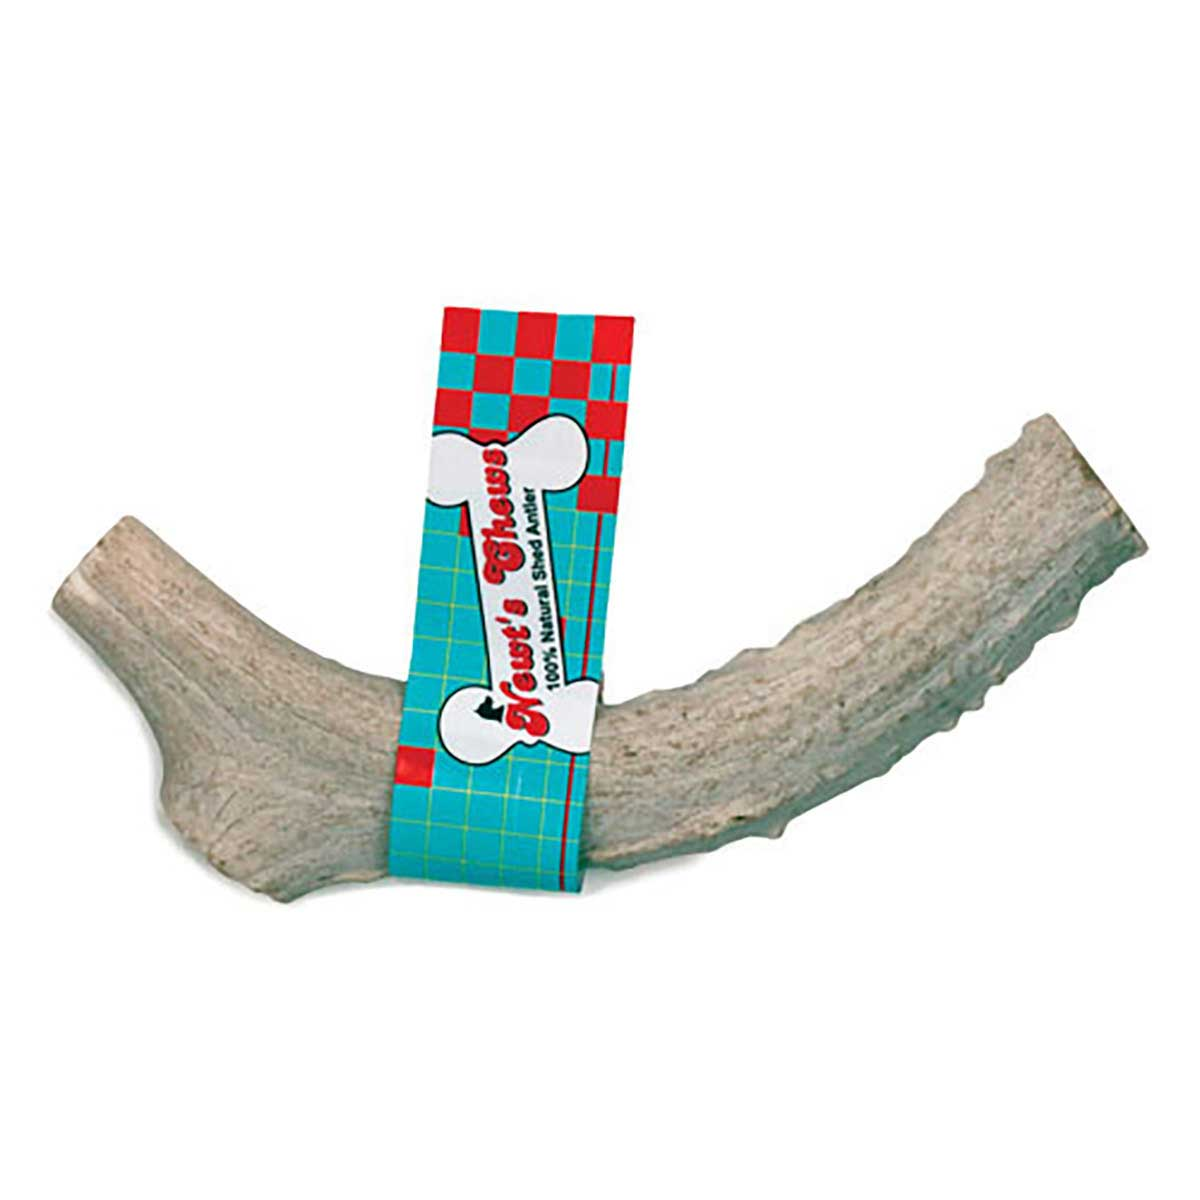 Newt's Chews Medium Deer Antler for Dogs - 2.5 oz-4 oz